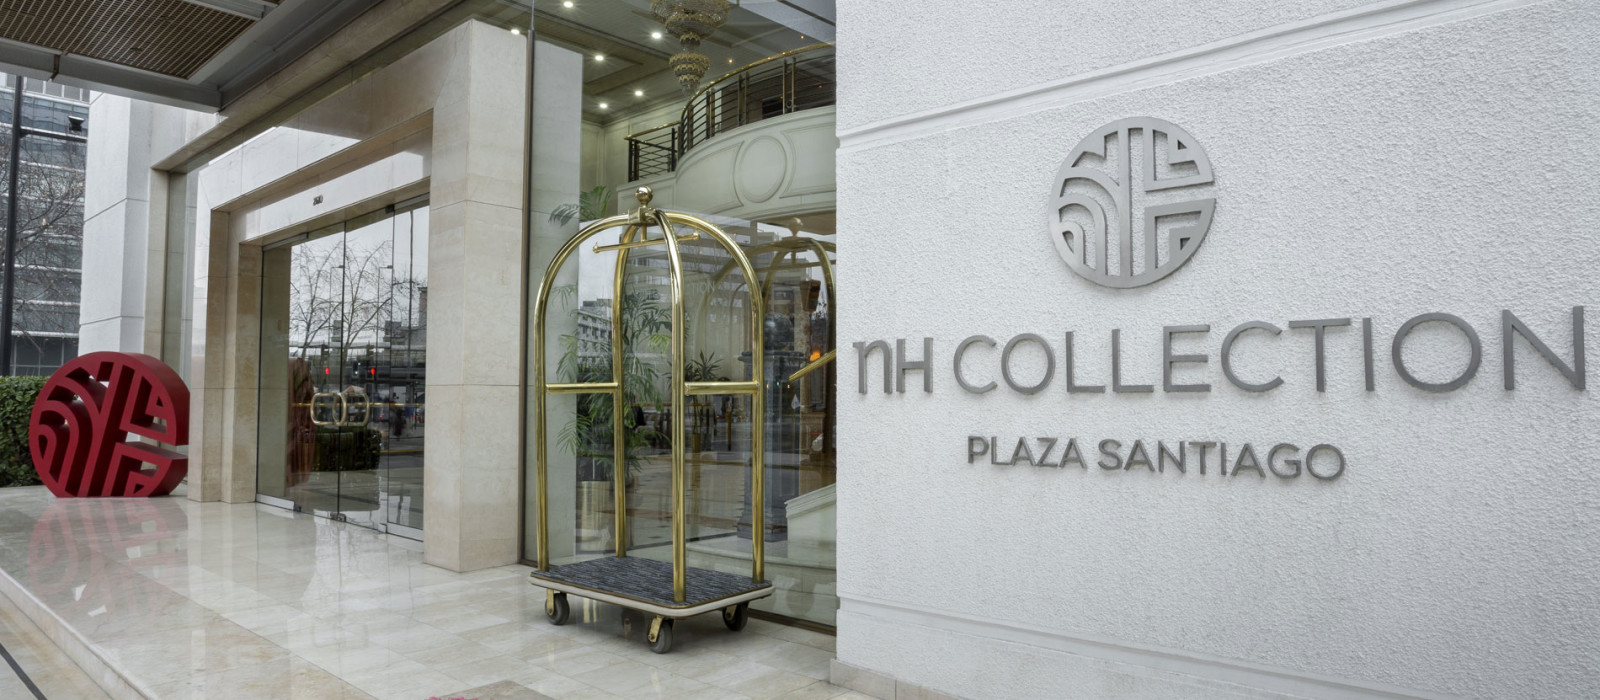 Hotel NH Collection Plaza Santiago Chile